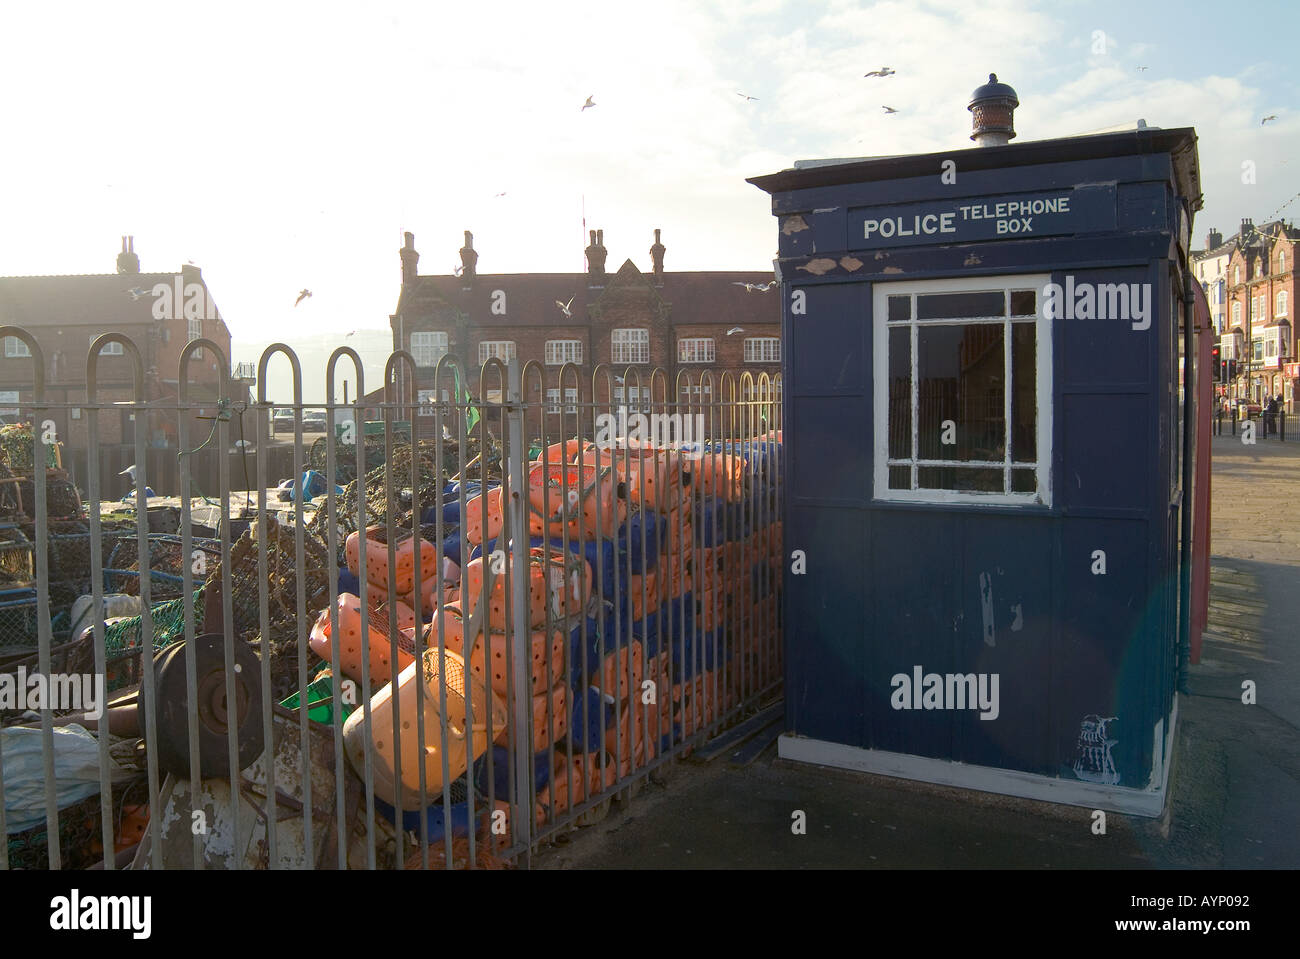 police phone box on seafront at scarborough seaside town in north yorkshire england dr who tardis blue flashing light - Stock Image